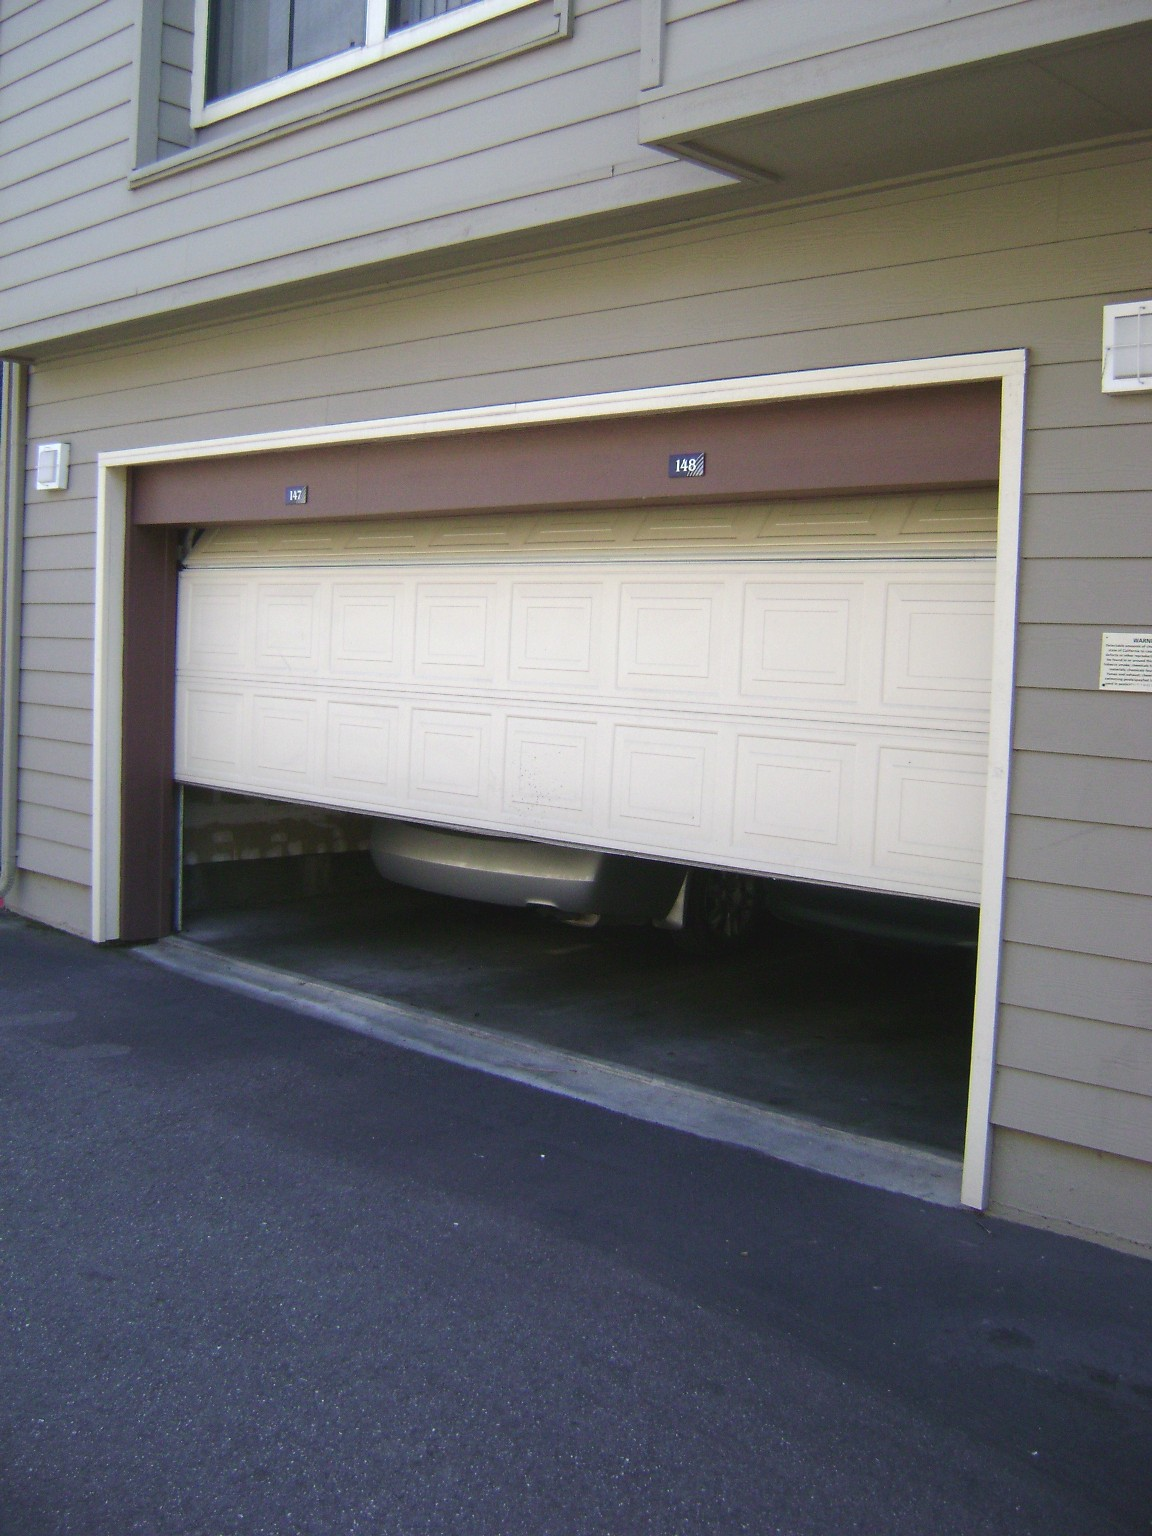 Garage door wikipedia for Oversized garage door